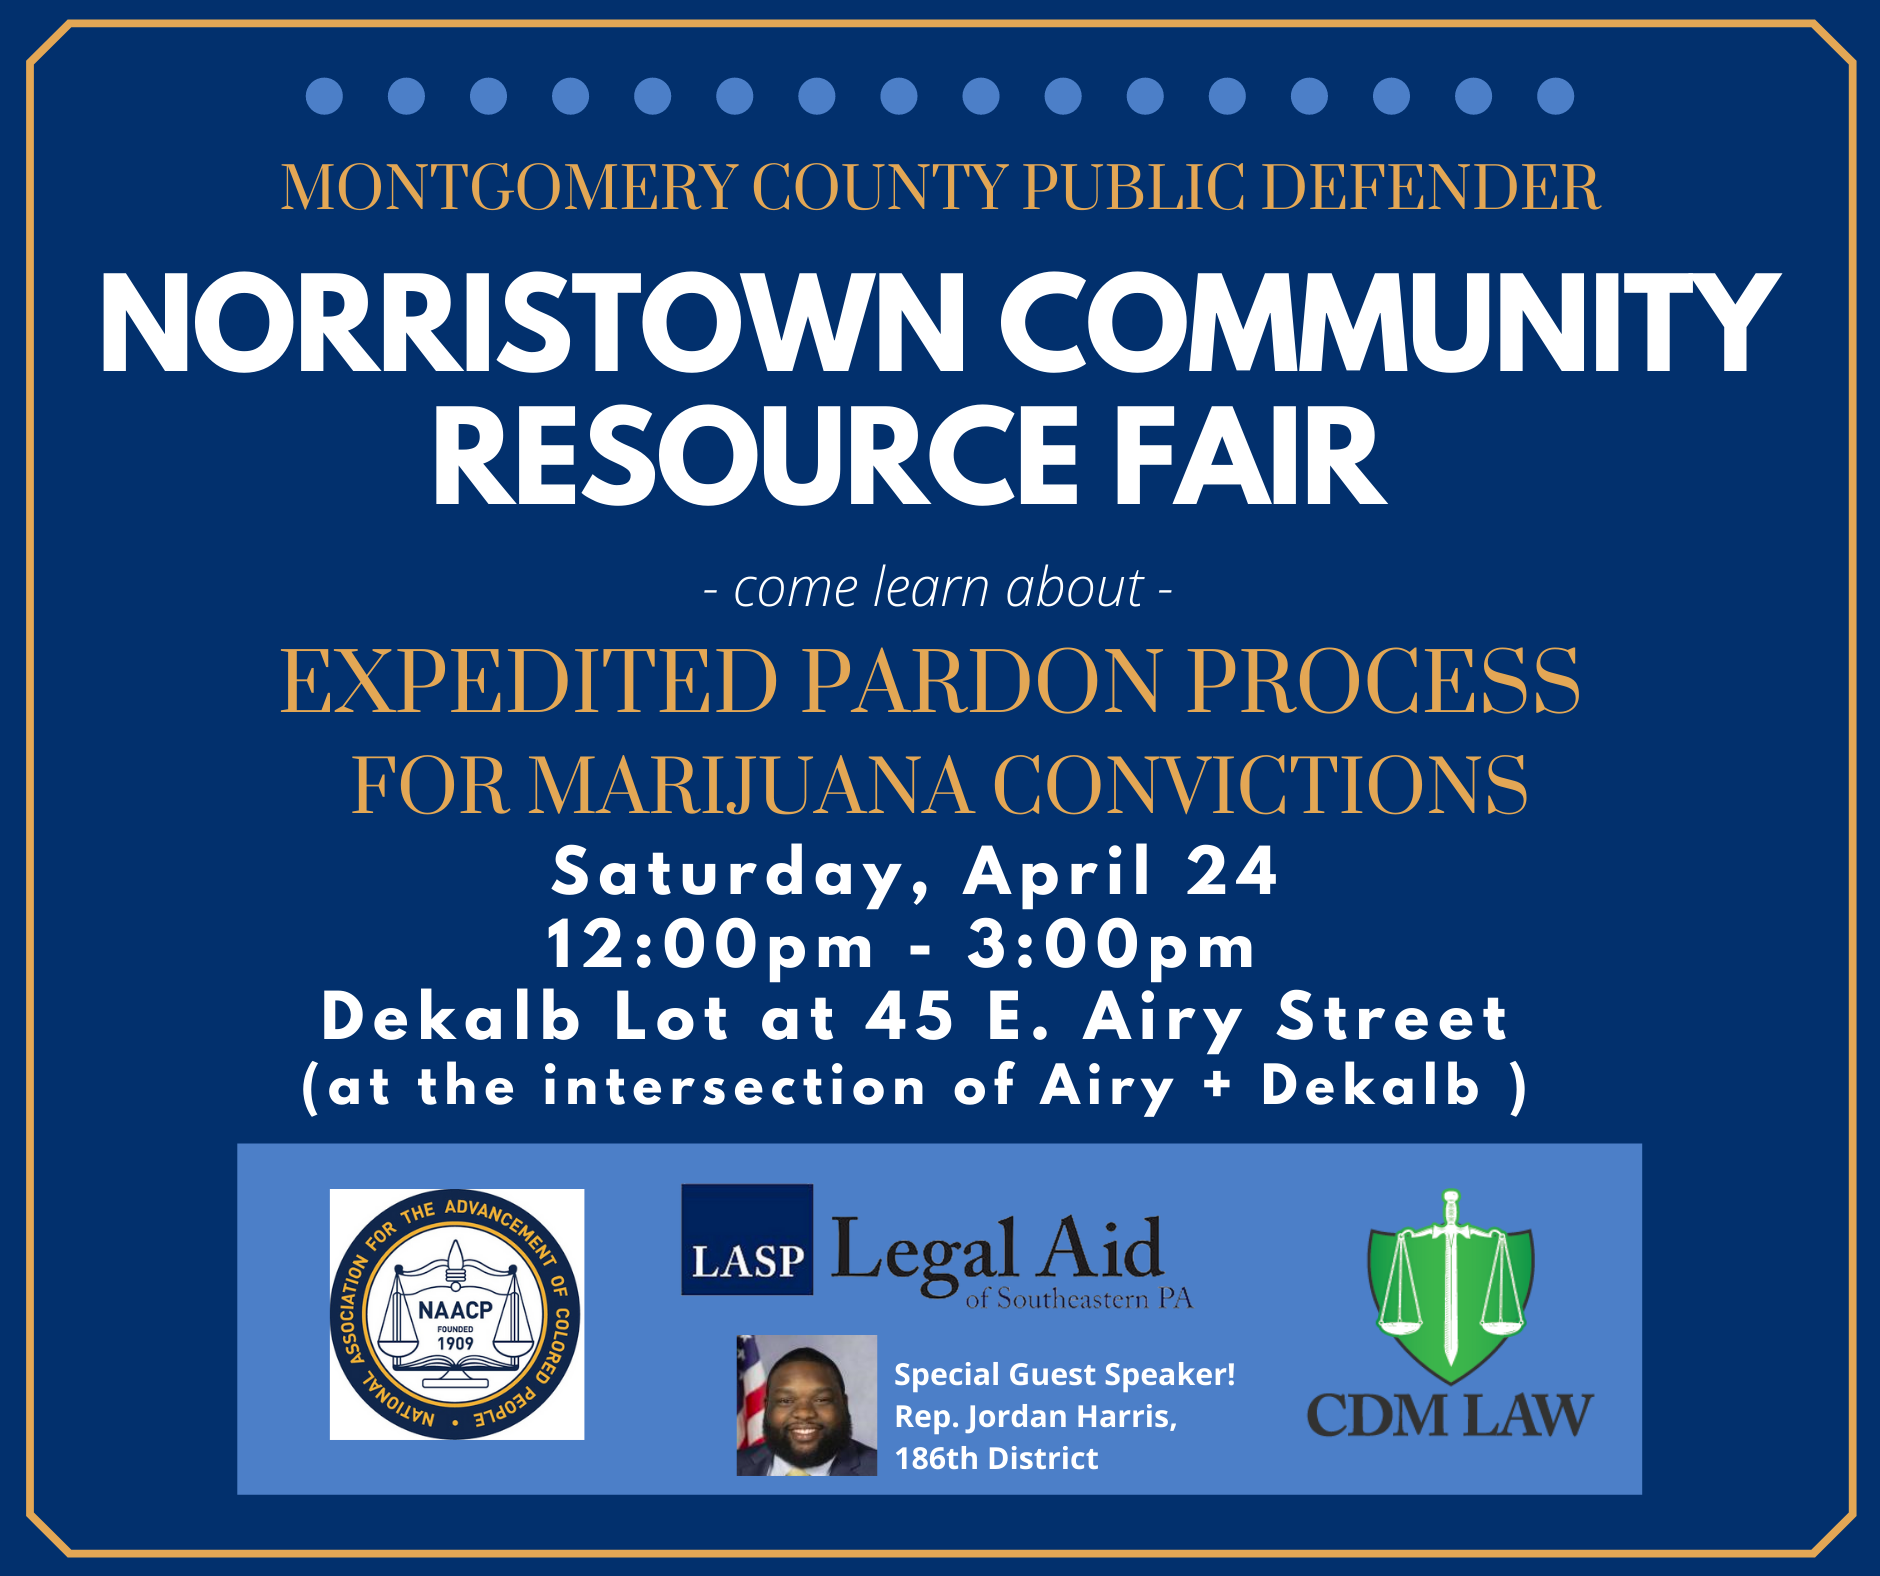 Norristown Community Resource Fair is Saturday